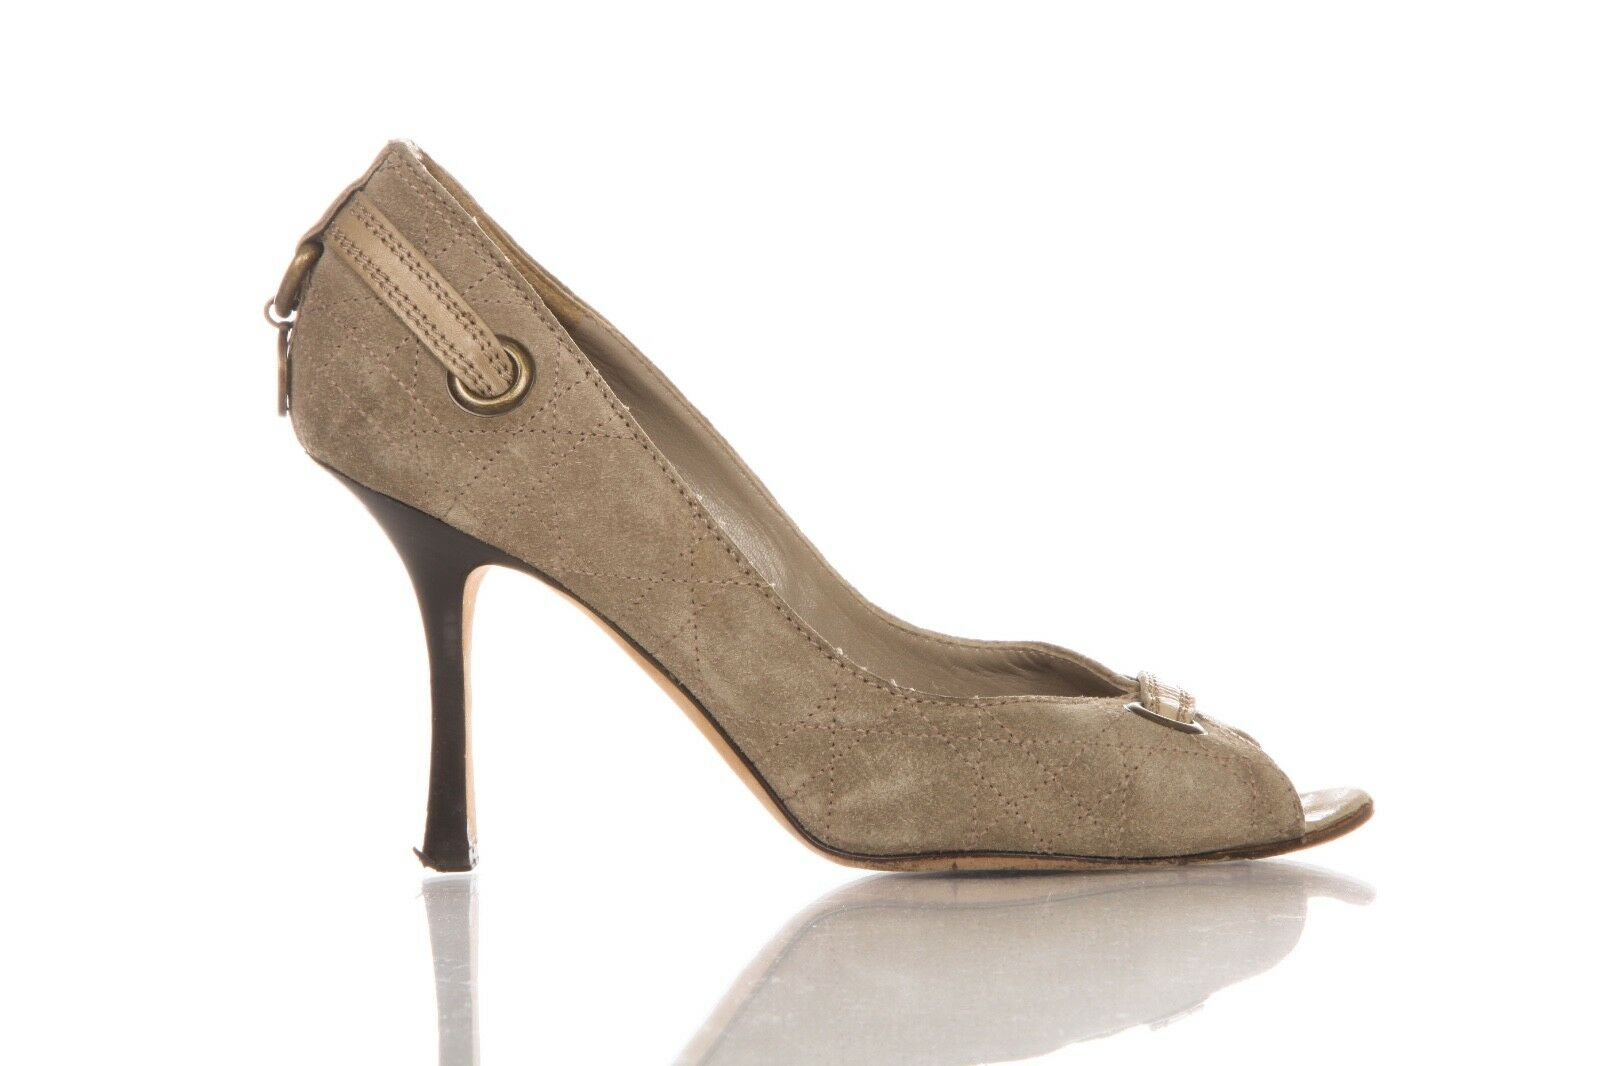 CHRISTIAN DIOR Heels US 8 Suede Beige Taupe Peep Open Toe Pumps